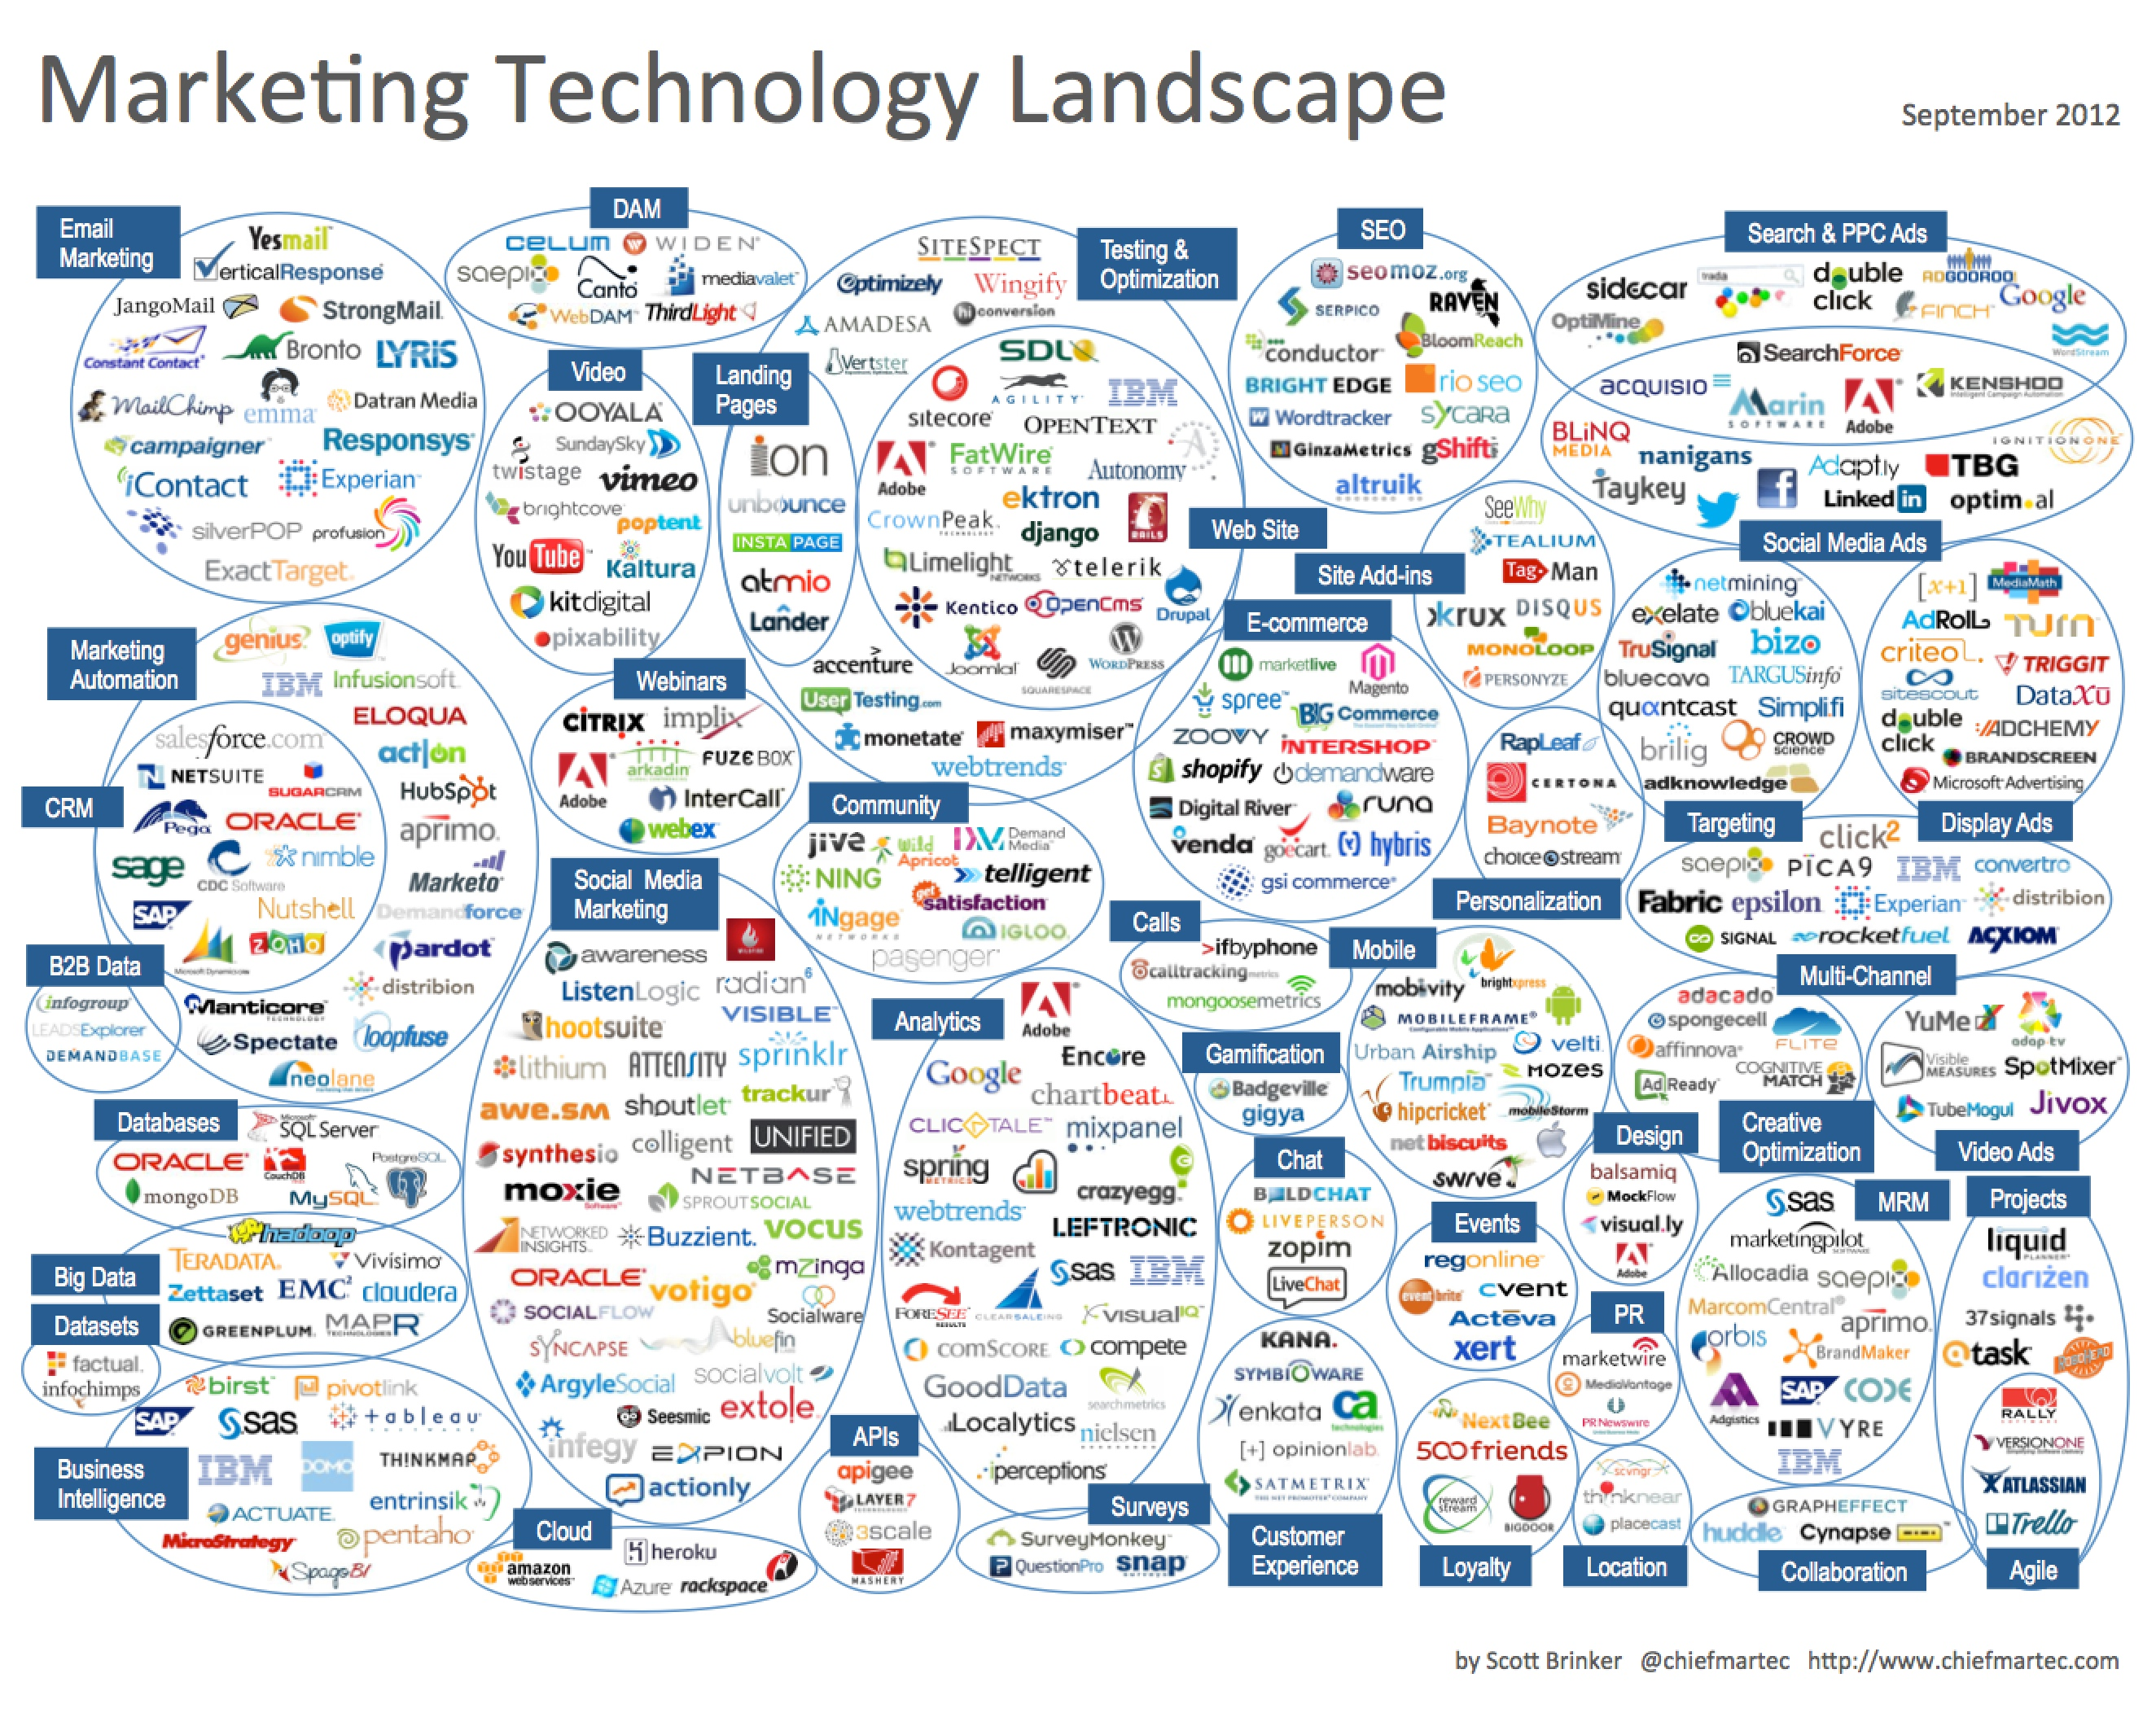 marketing_technology_landscape_2012.jpg